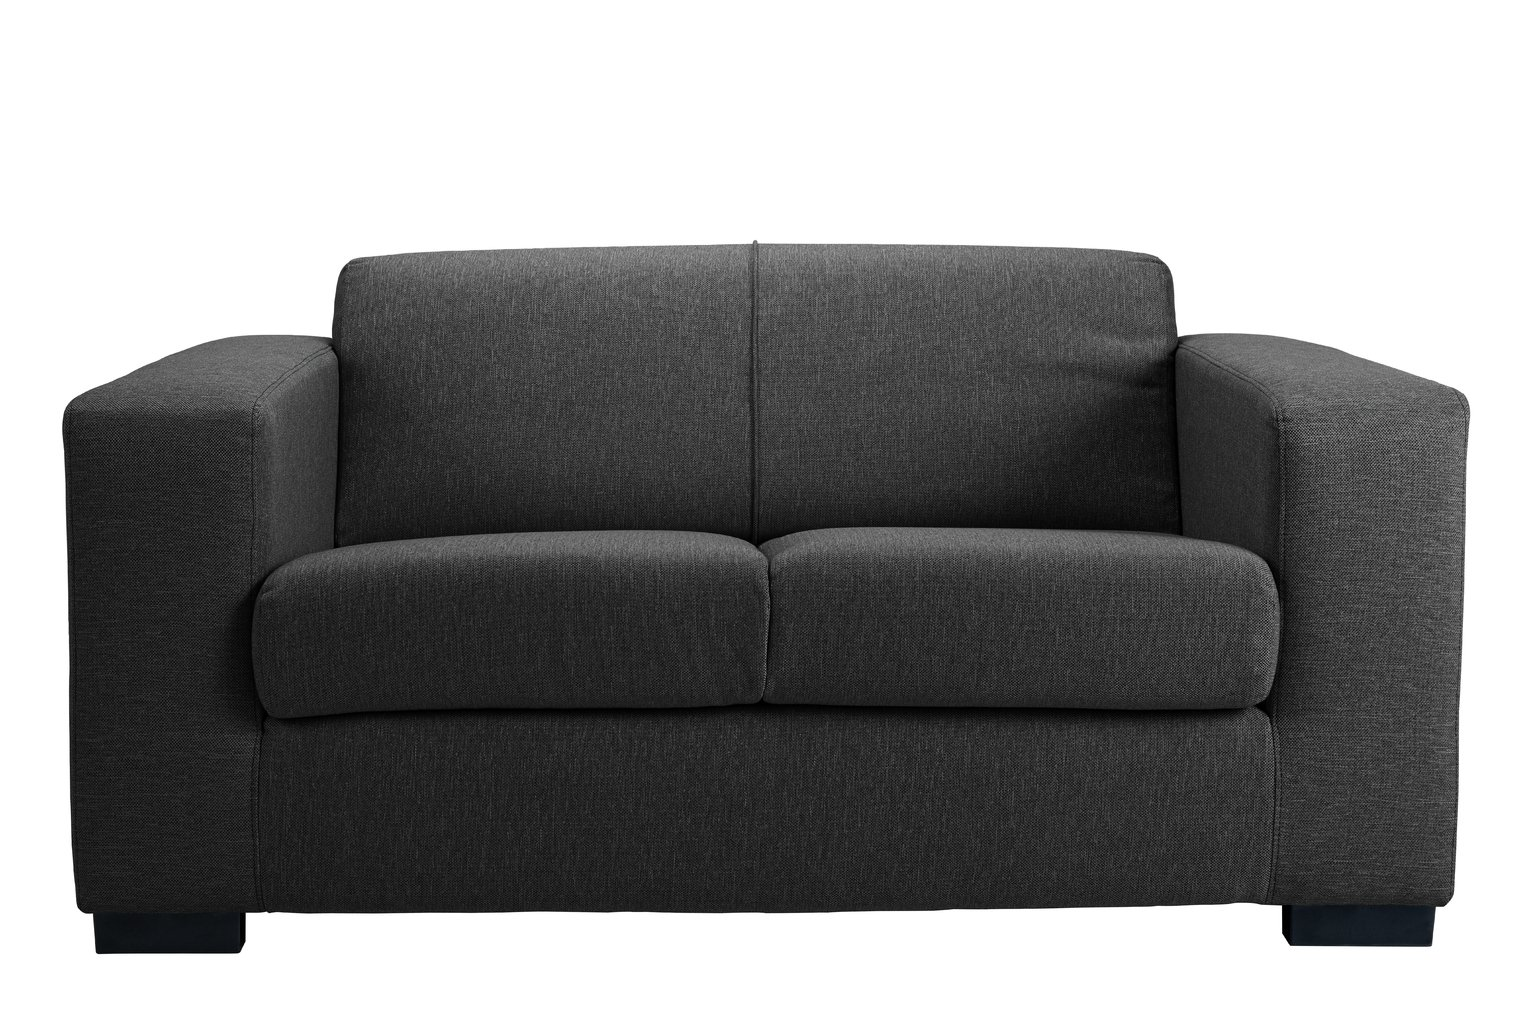 argos ava fabric sofa review clayton dfs buy home compact 2 seater charcoal sofas